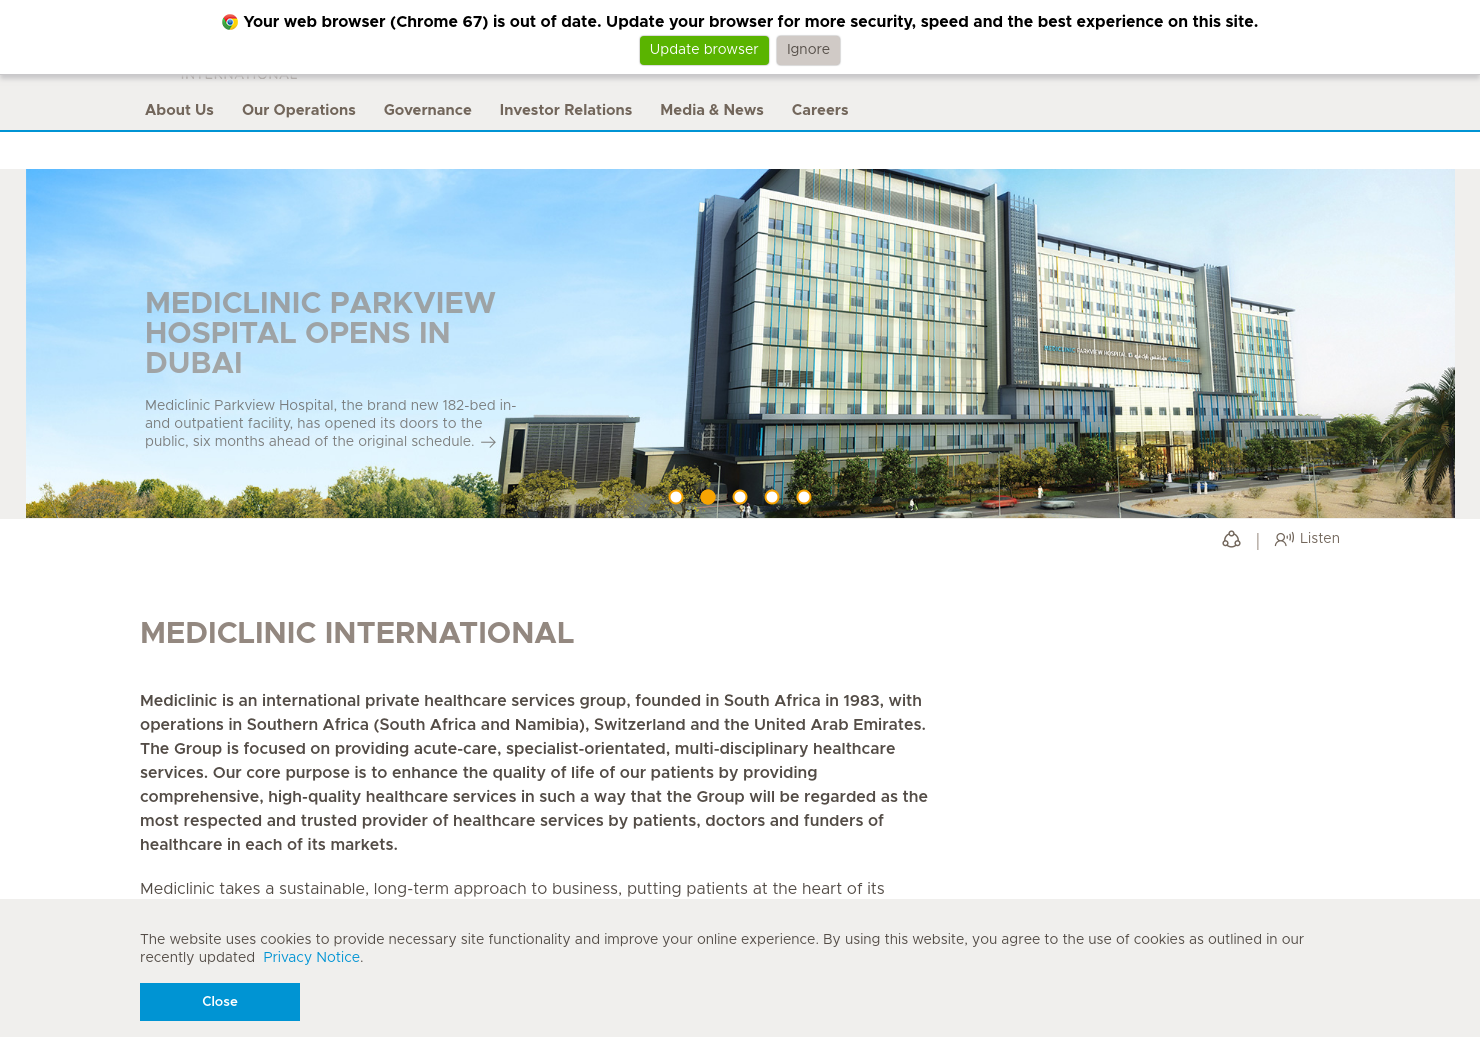 Mediclinic International Home Page